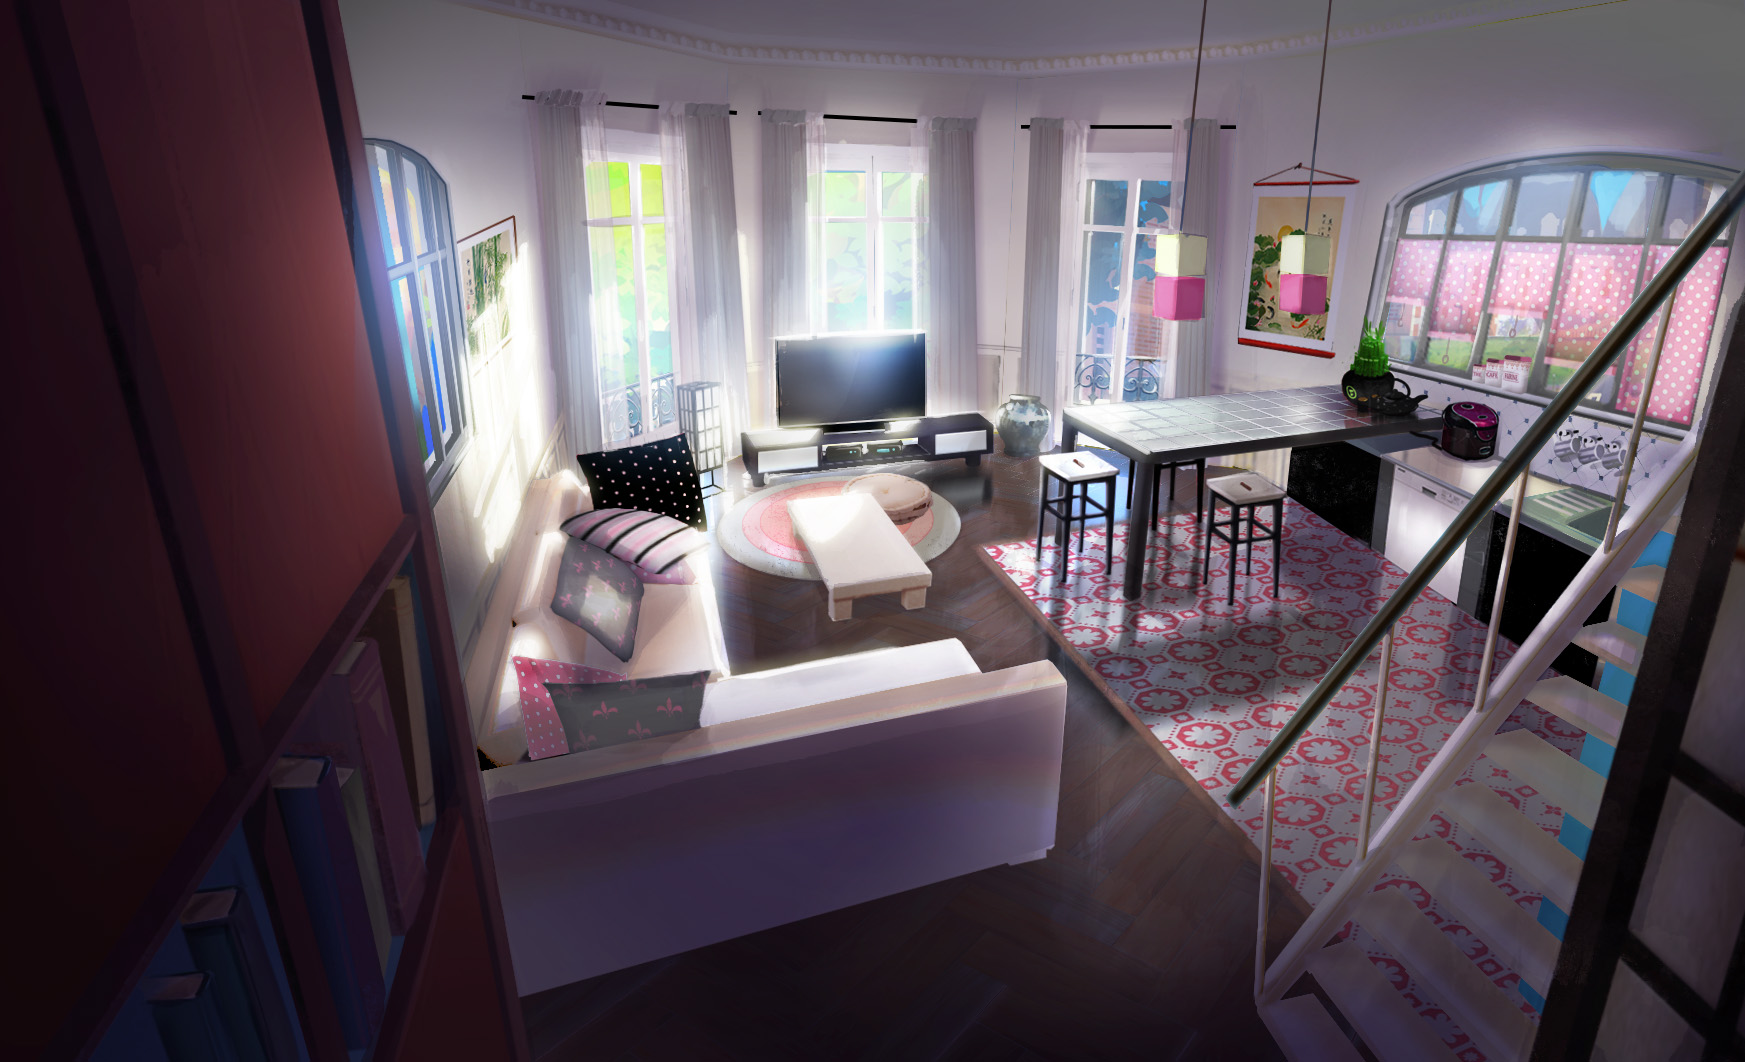 The Bakeryu0027s Living Room 2D Background.png